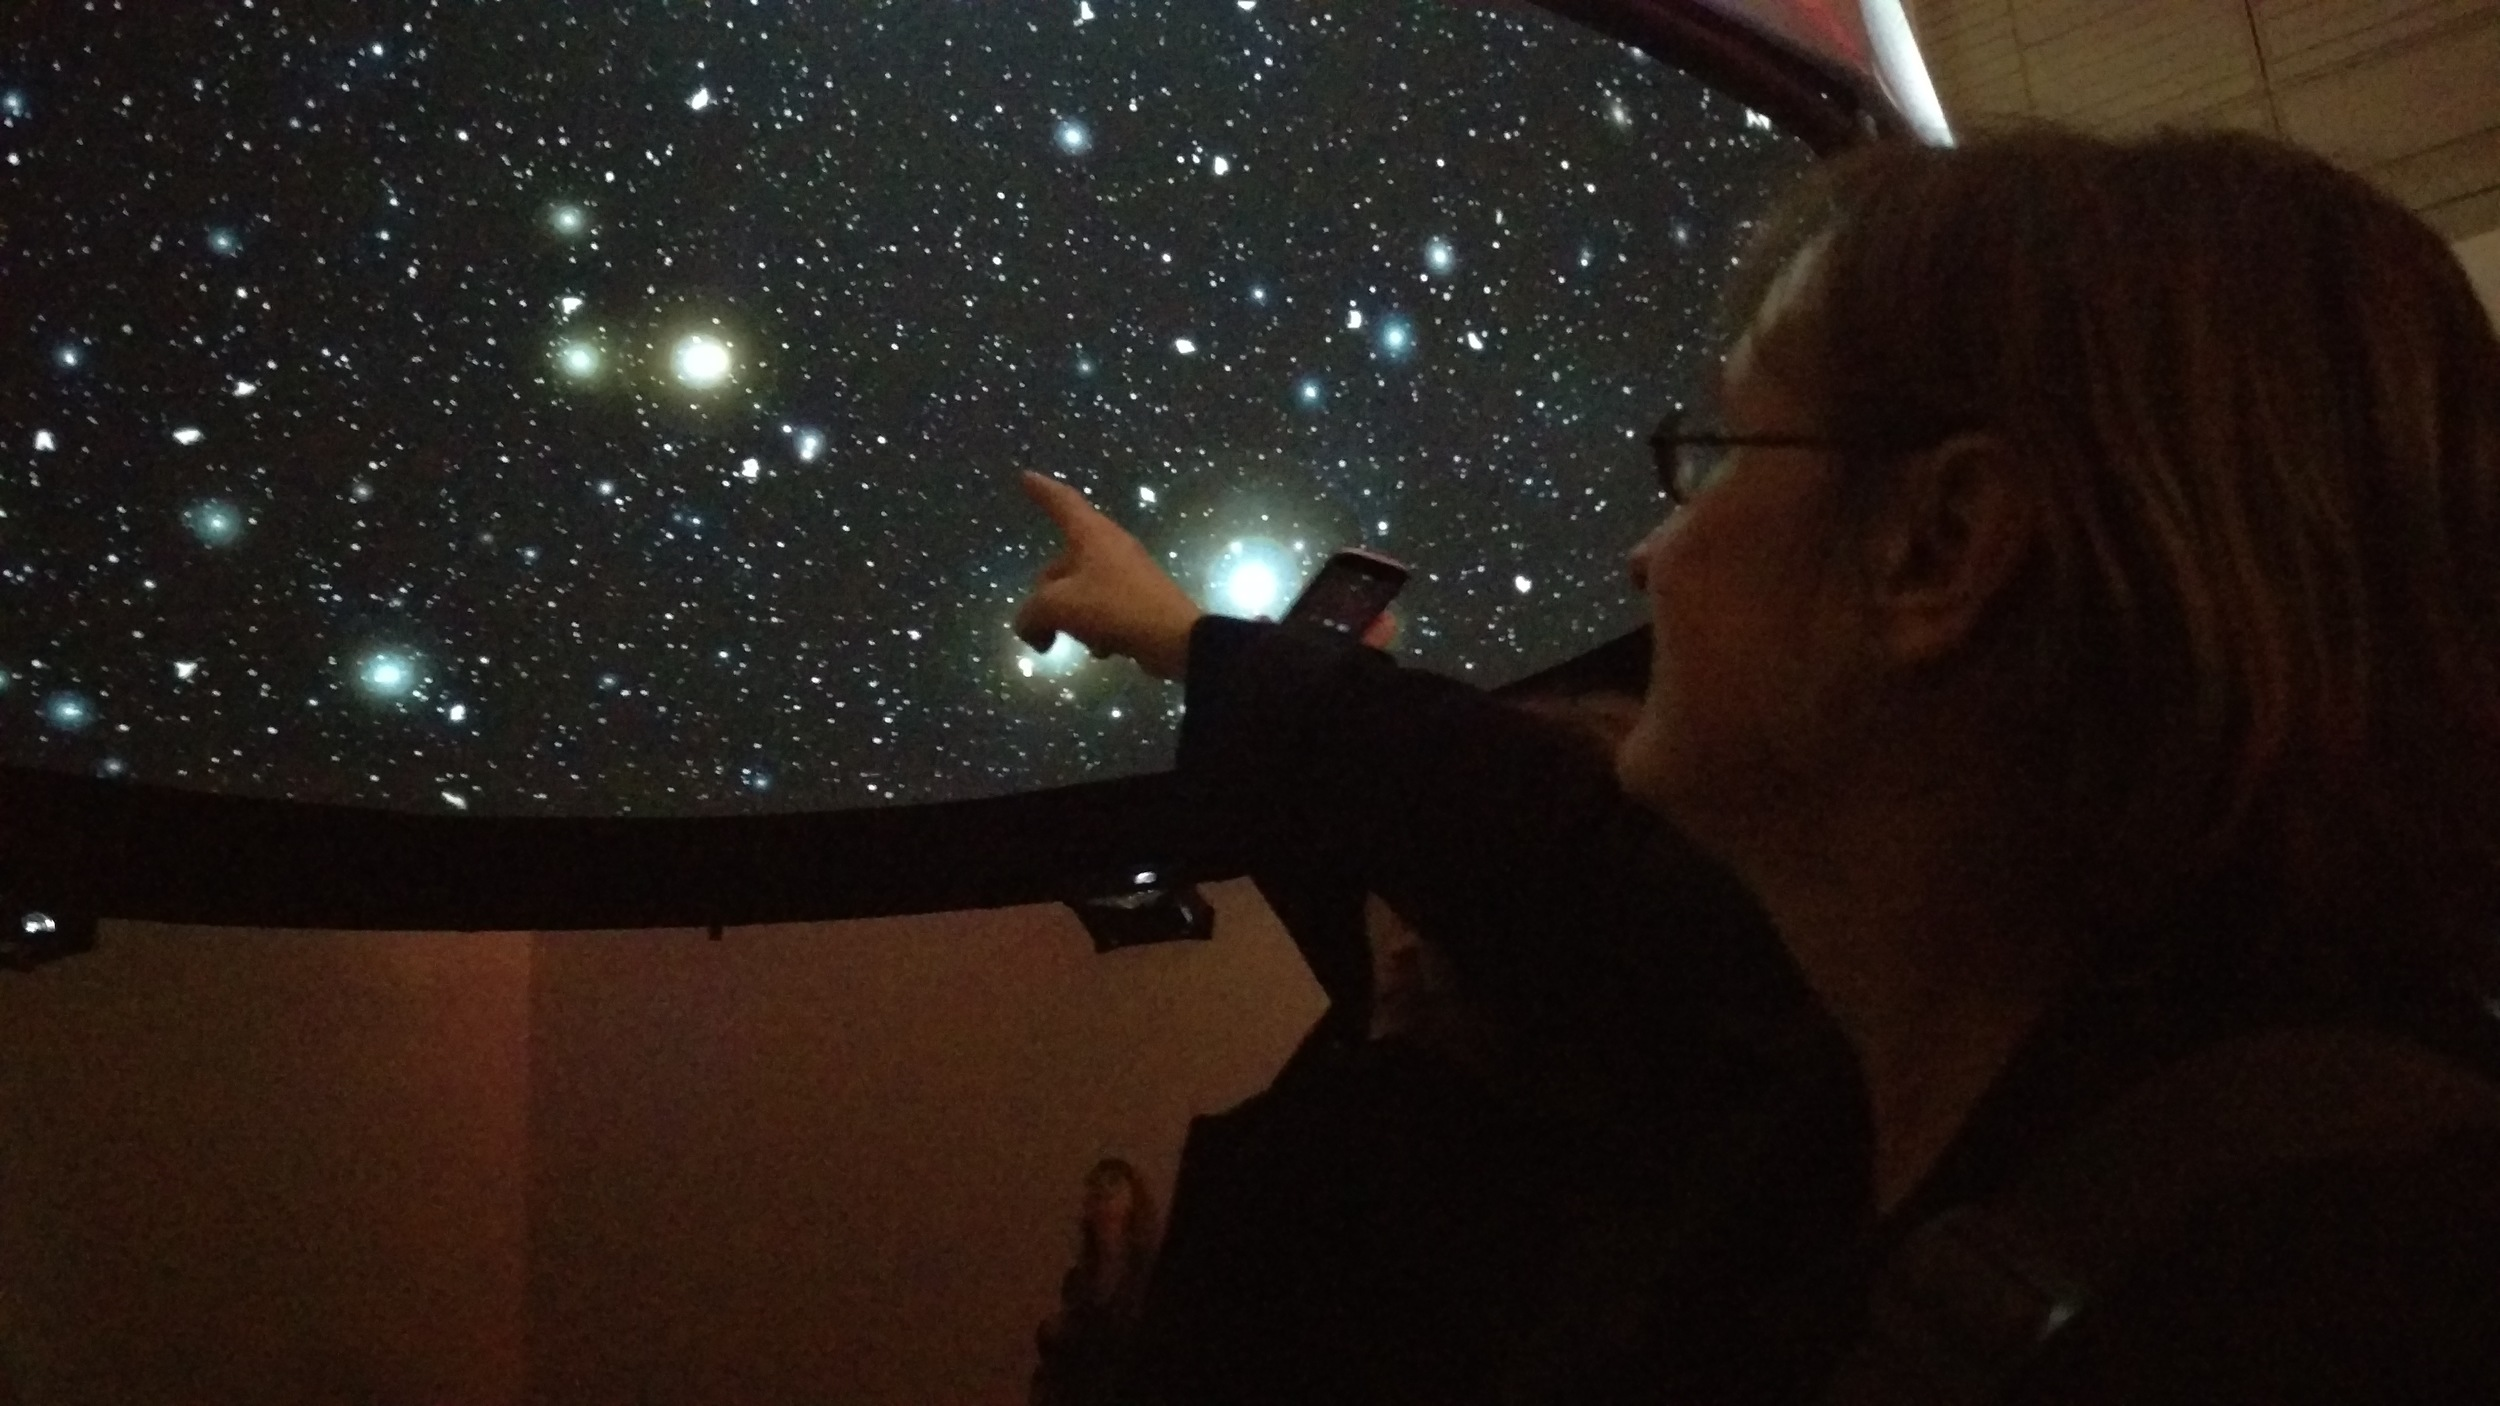 Lise Autogena underneath 'Black Shoals: Dark Matter'- a stock market planetarium created by Lise Autogena and Joshua Portway at Big Bang Data at Somerset House on December 3, 2015 in London, England.  (Photo by Gavin Starks)